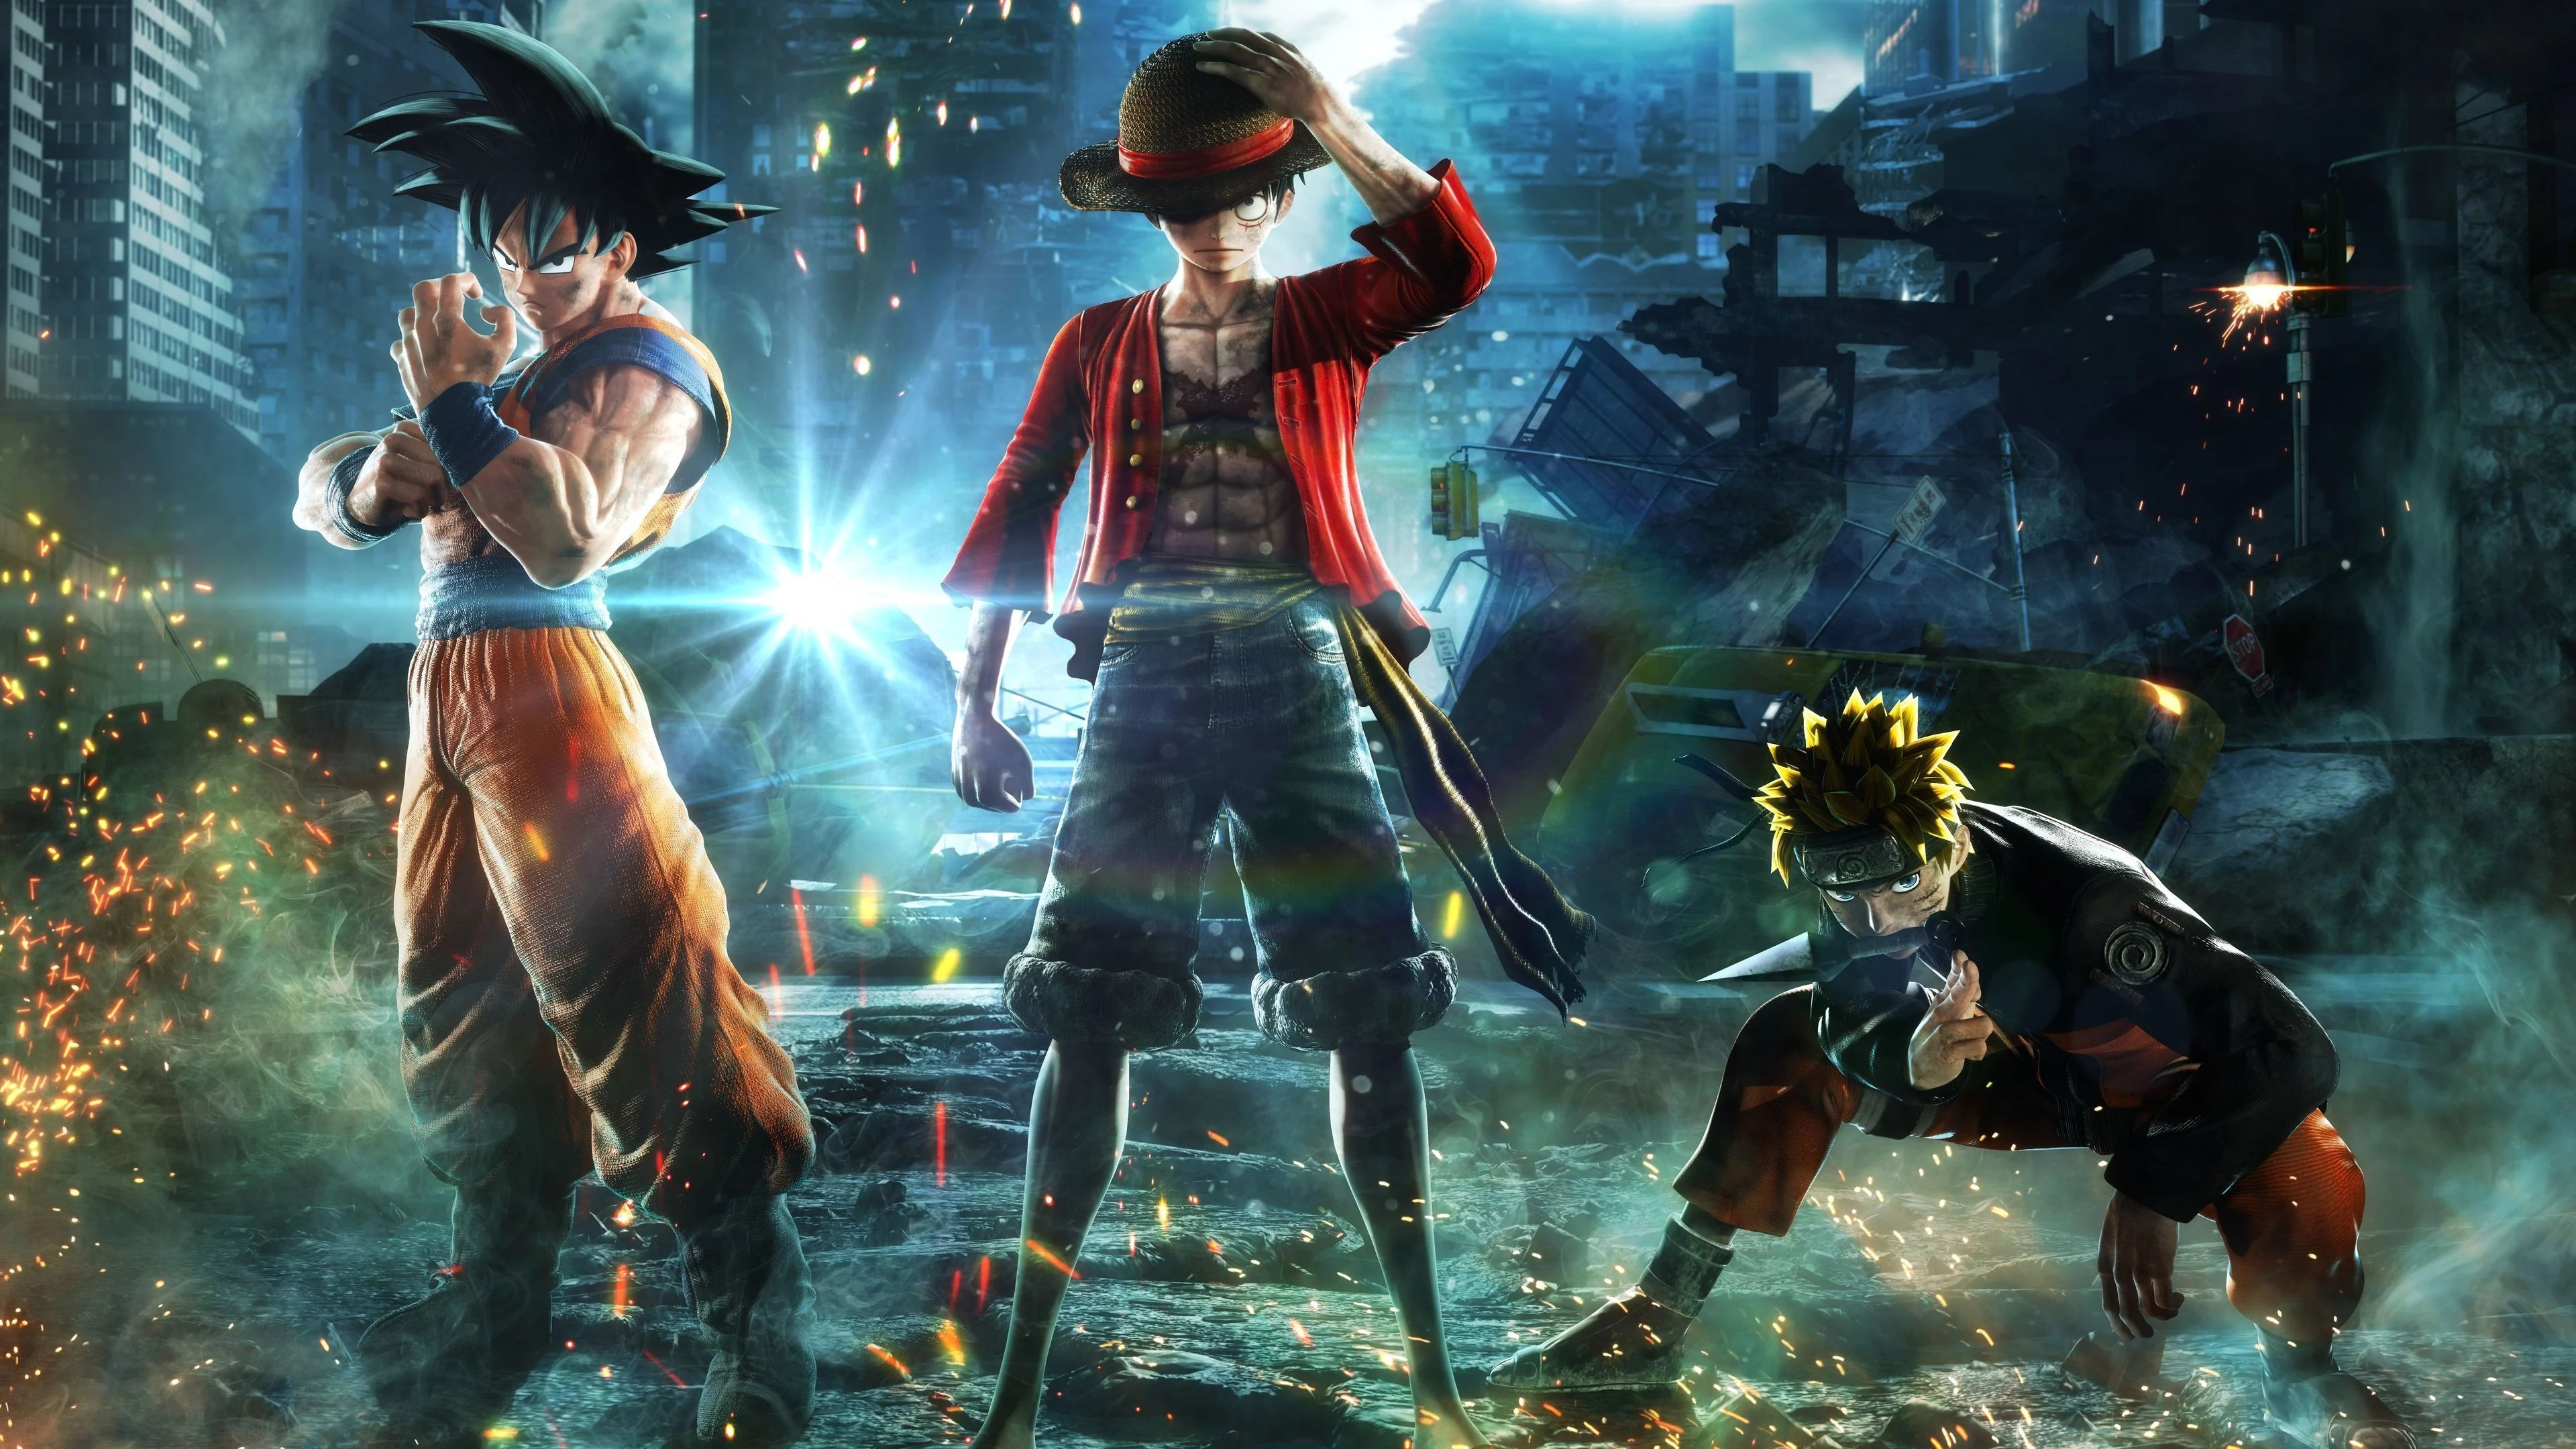 Monkey luffy wallpaper for free download in different resolution hd widescreen 4k 5k 8k ultra hd wallpaper support different devices like. Goku And Luffy Wallpapers Wallpaper Cave